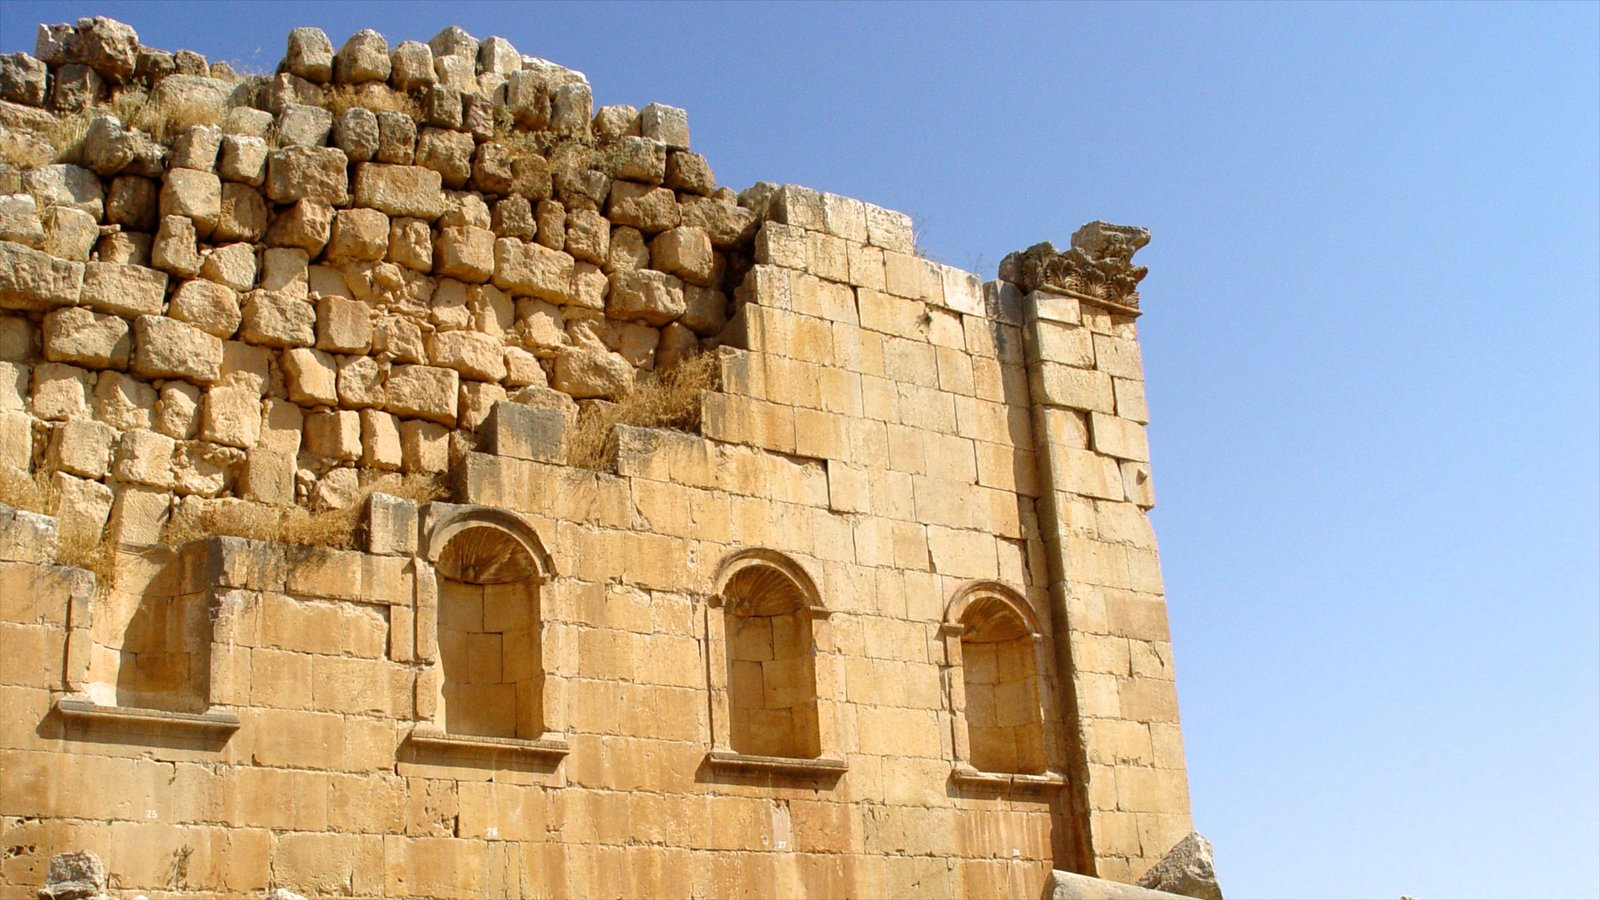 Jerash which includes building ruins and heritage architecture